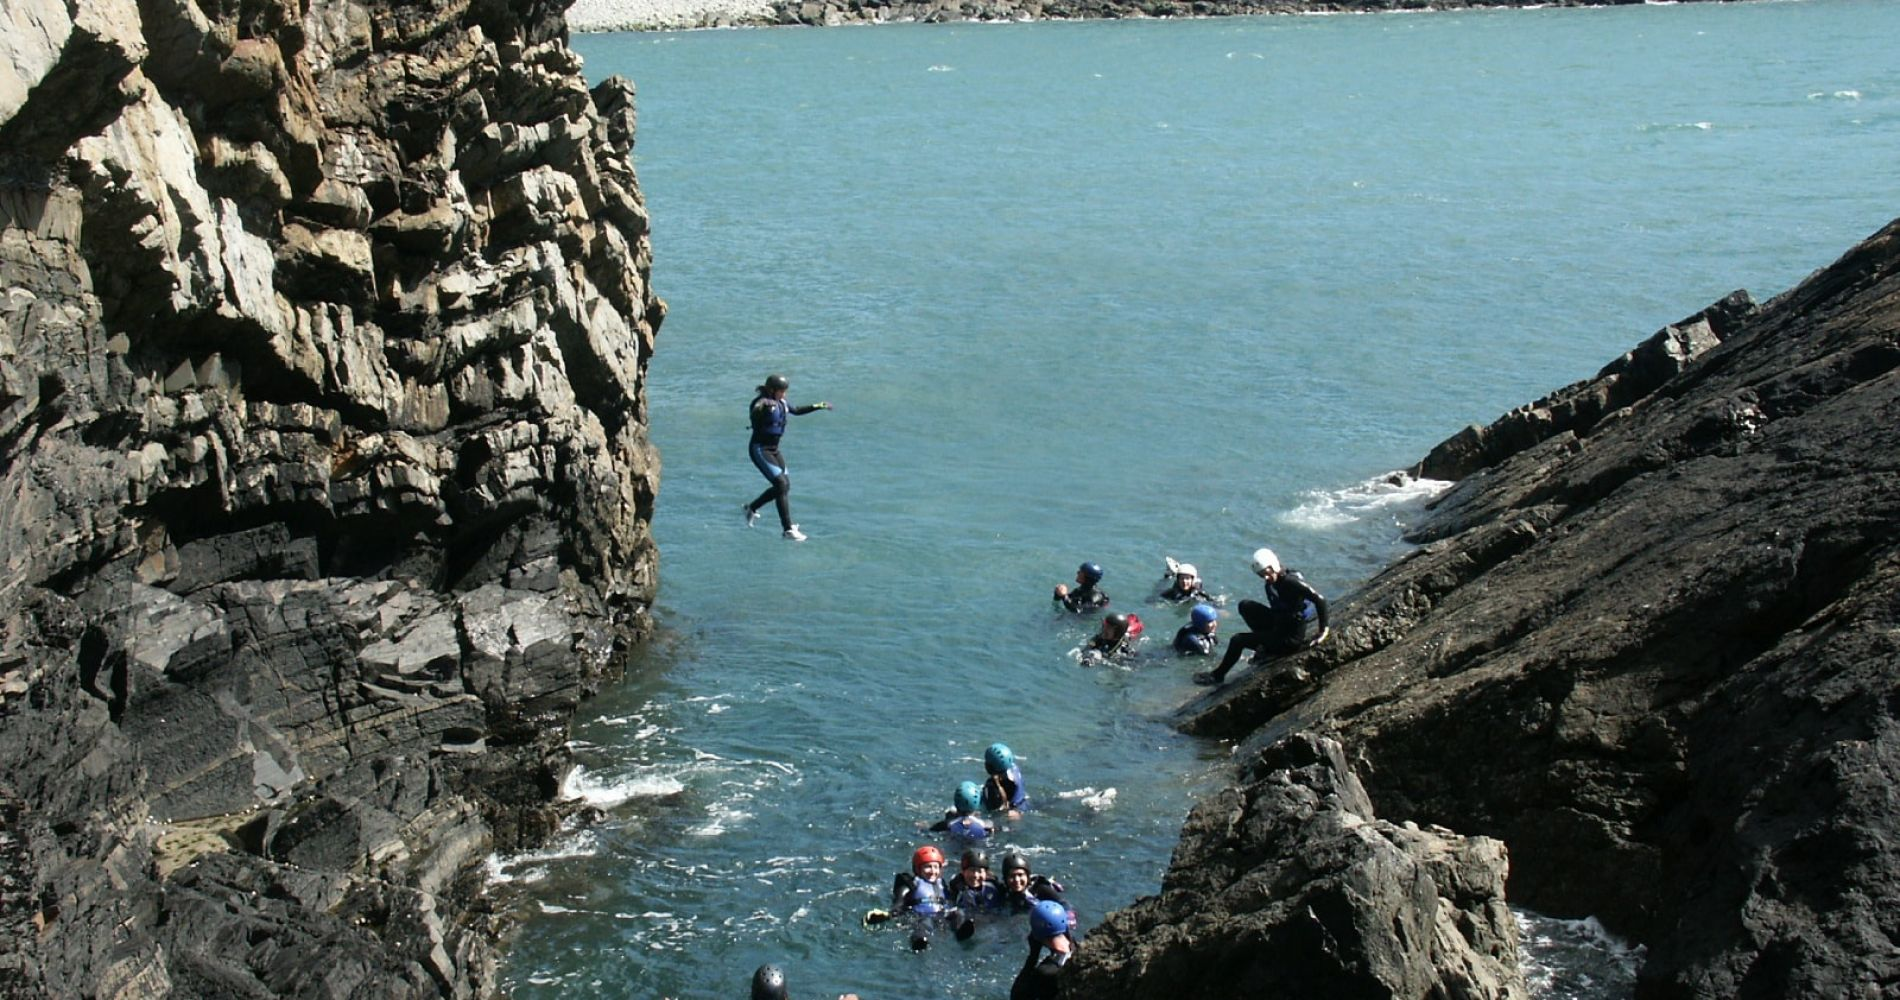 Half Day Endorphin Blaster Coasteering Adventure In United Kingdom for Two